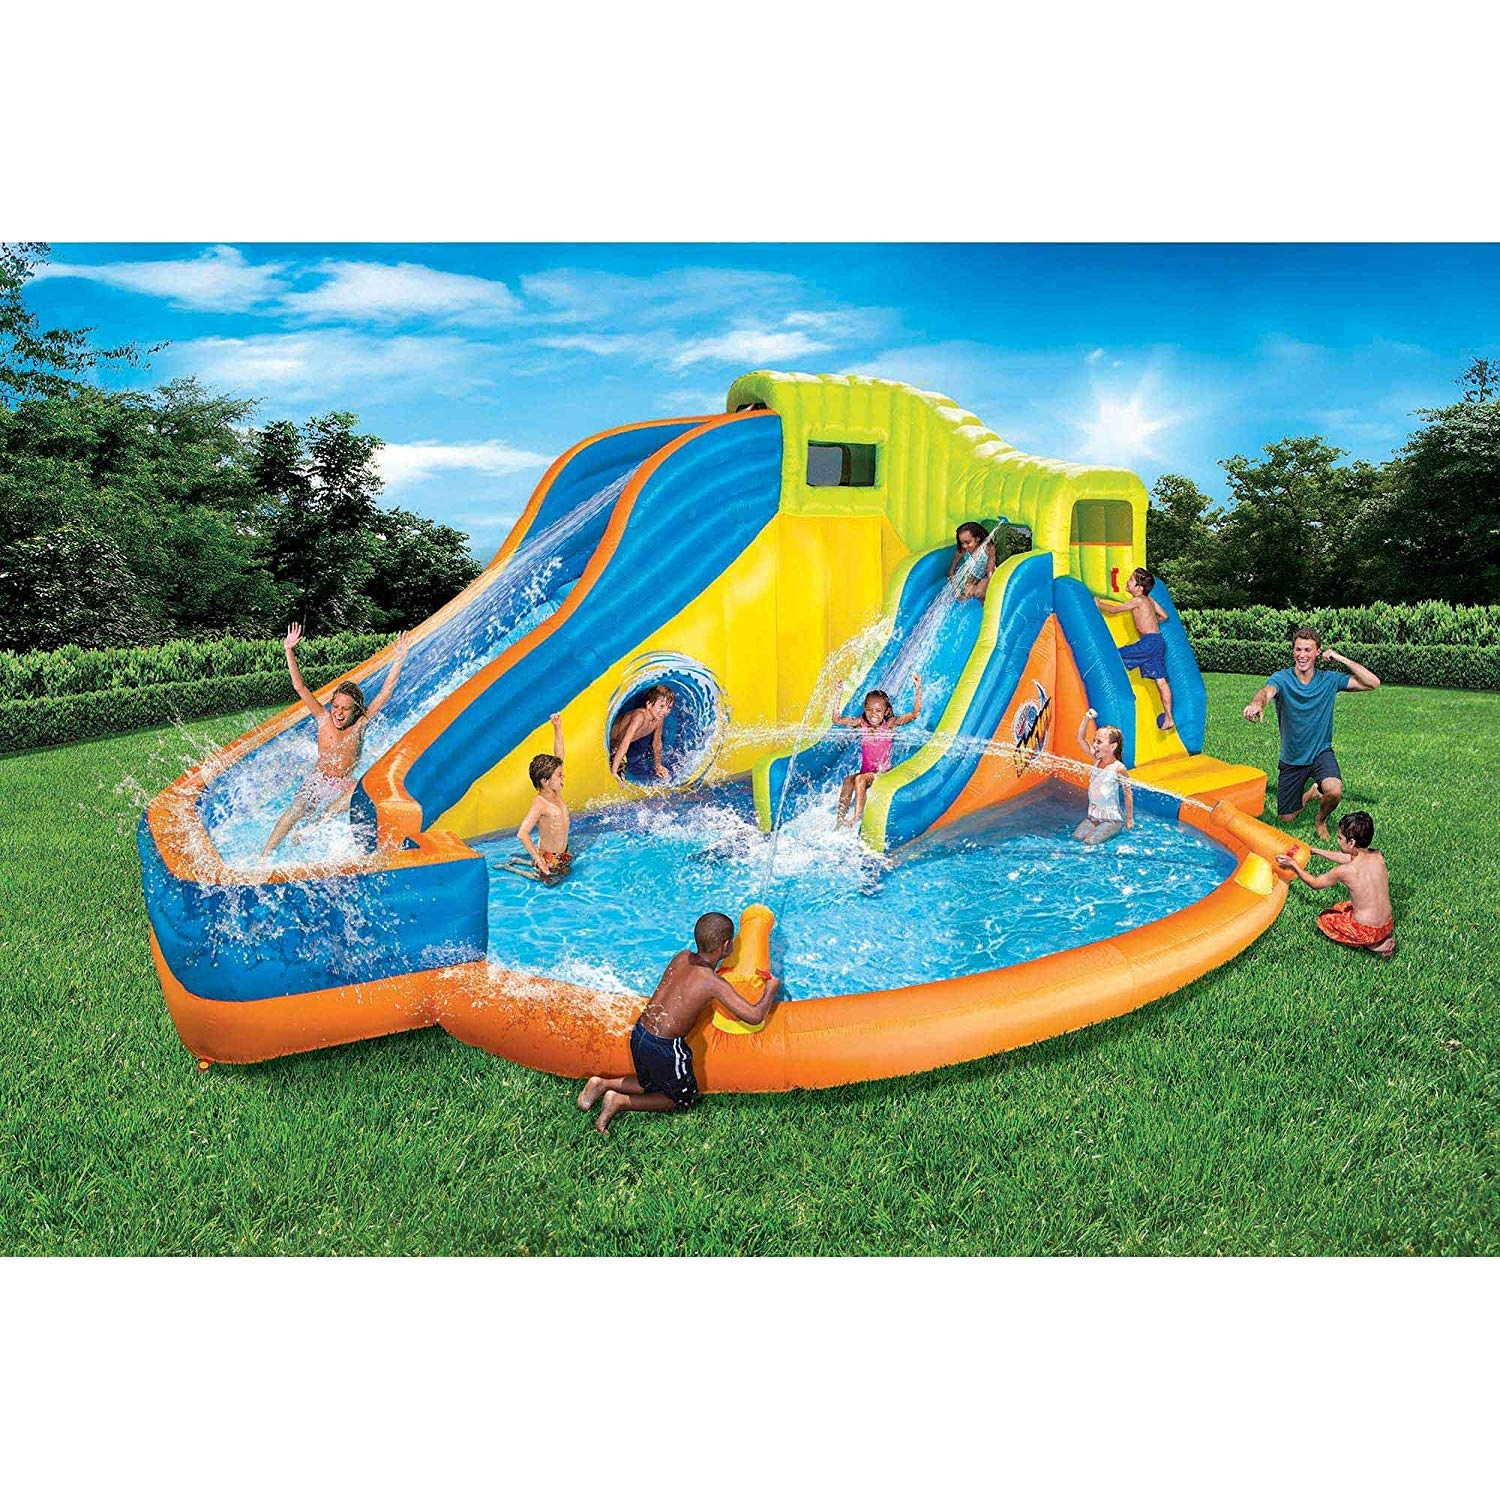 Banzai Pipeline Twist Inflatable Outdoor Water Park Pool ...